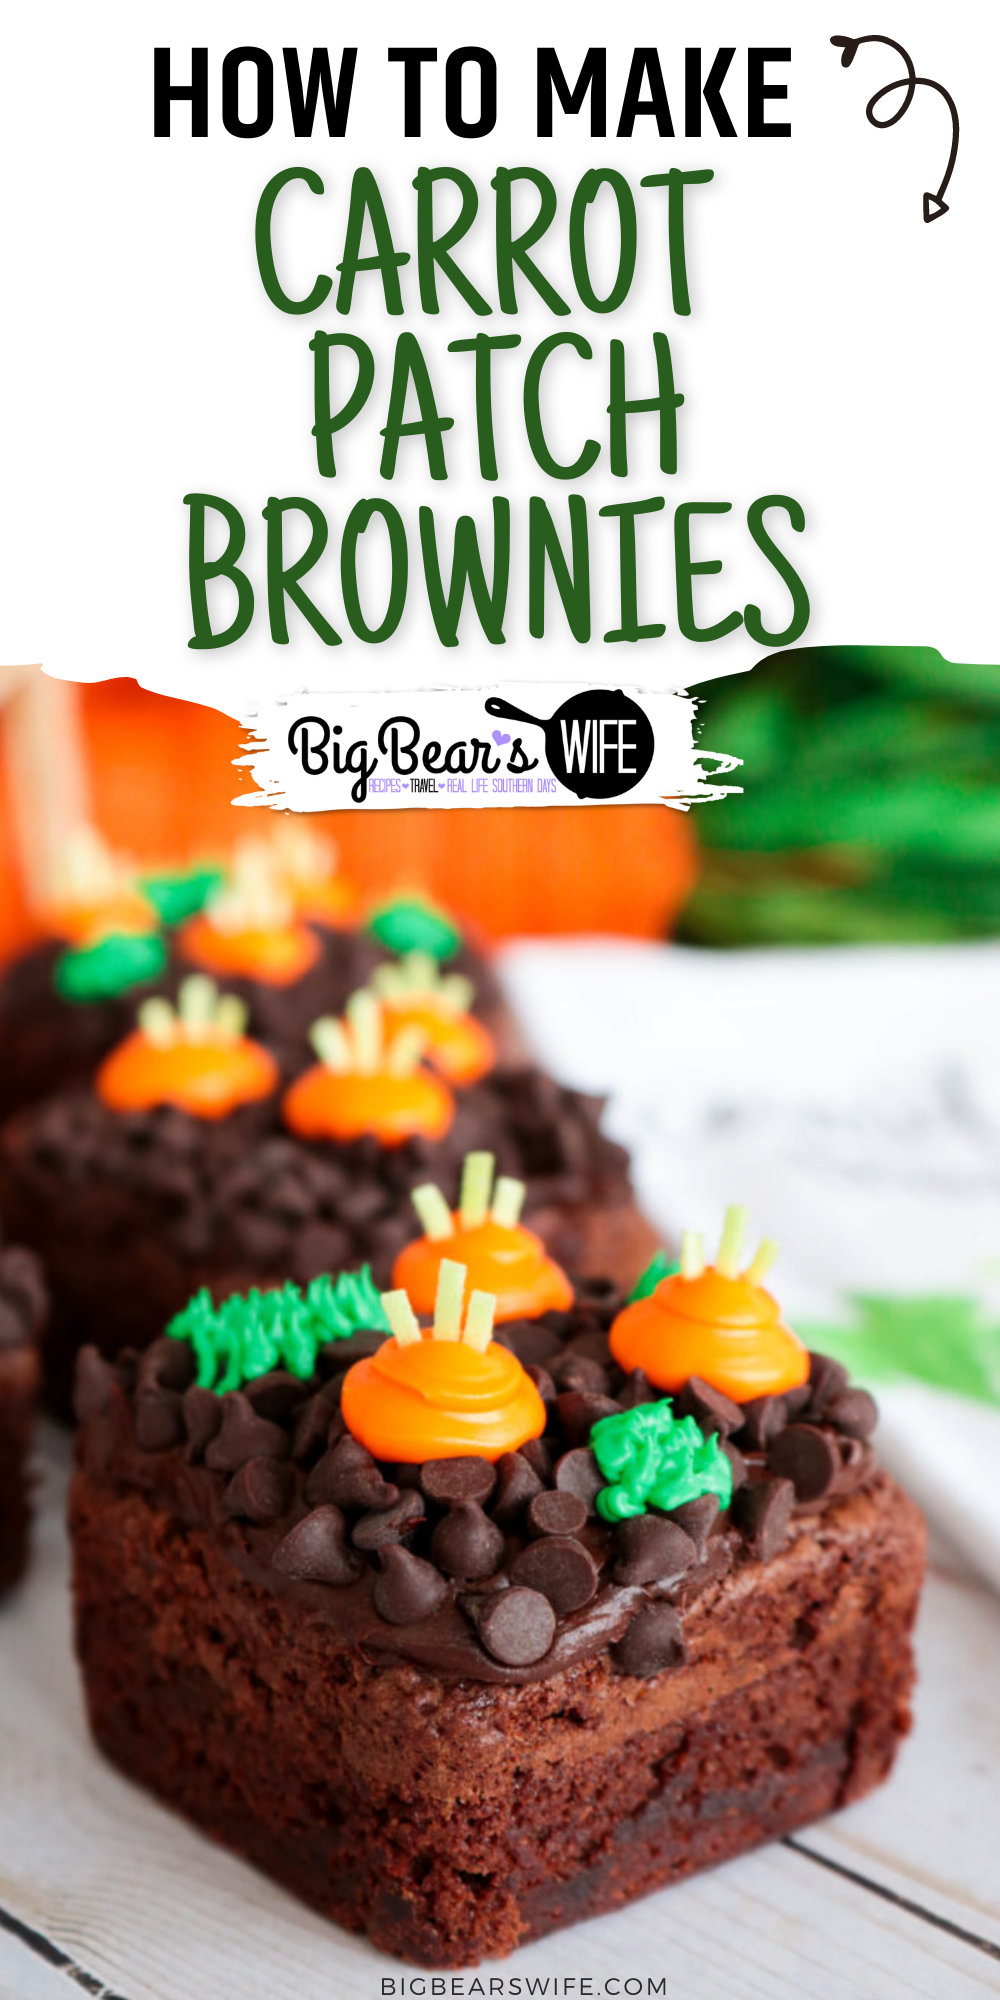 The Easter Bunny will be hopping around the corner any day now and he will love getting to snack on a few carrots from these Carrot Patch Brownies! They're easy to decorate and would look super cute as the sweet treat for any Easter or Spring time meal! via @bigbearswife